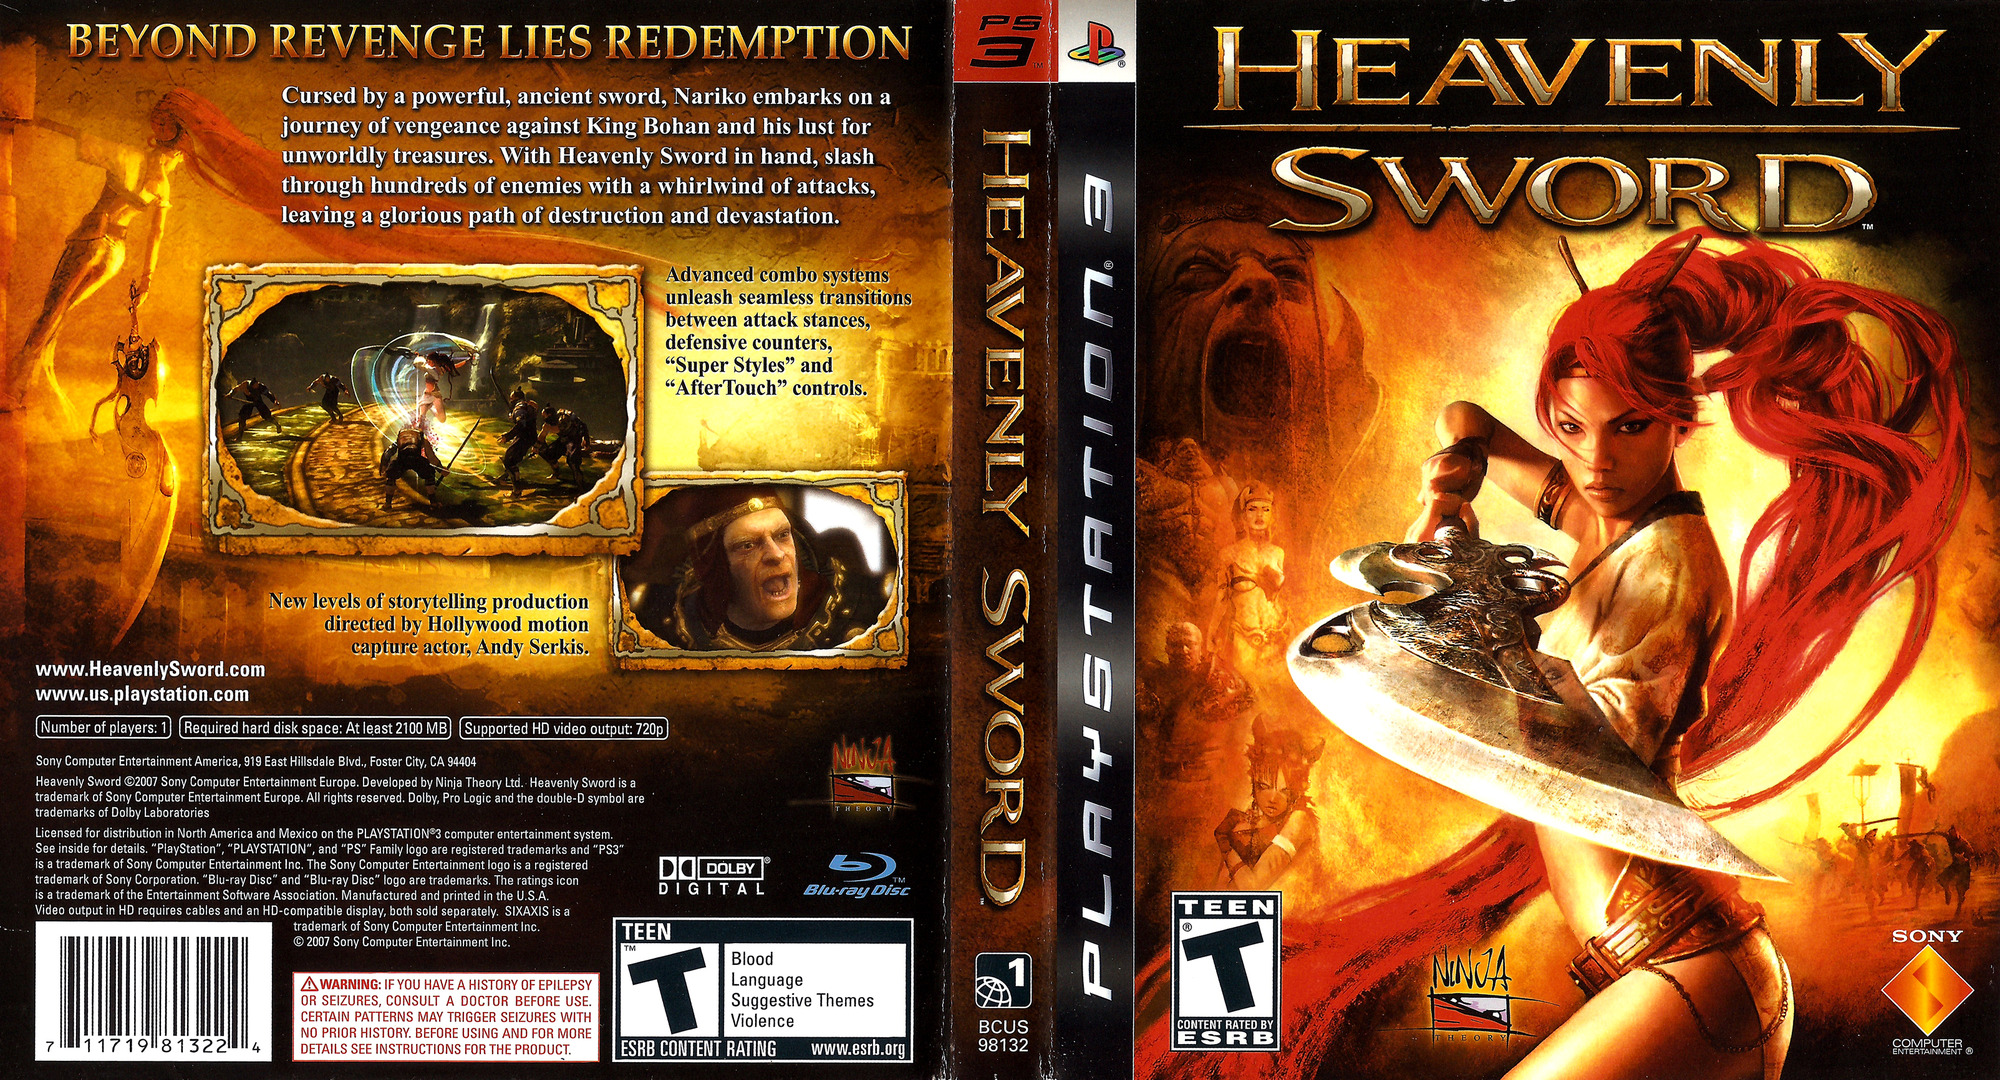 heavenly sword ps3 download